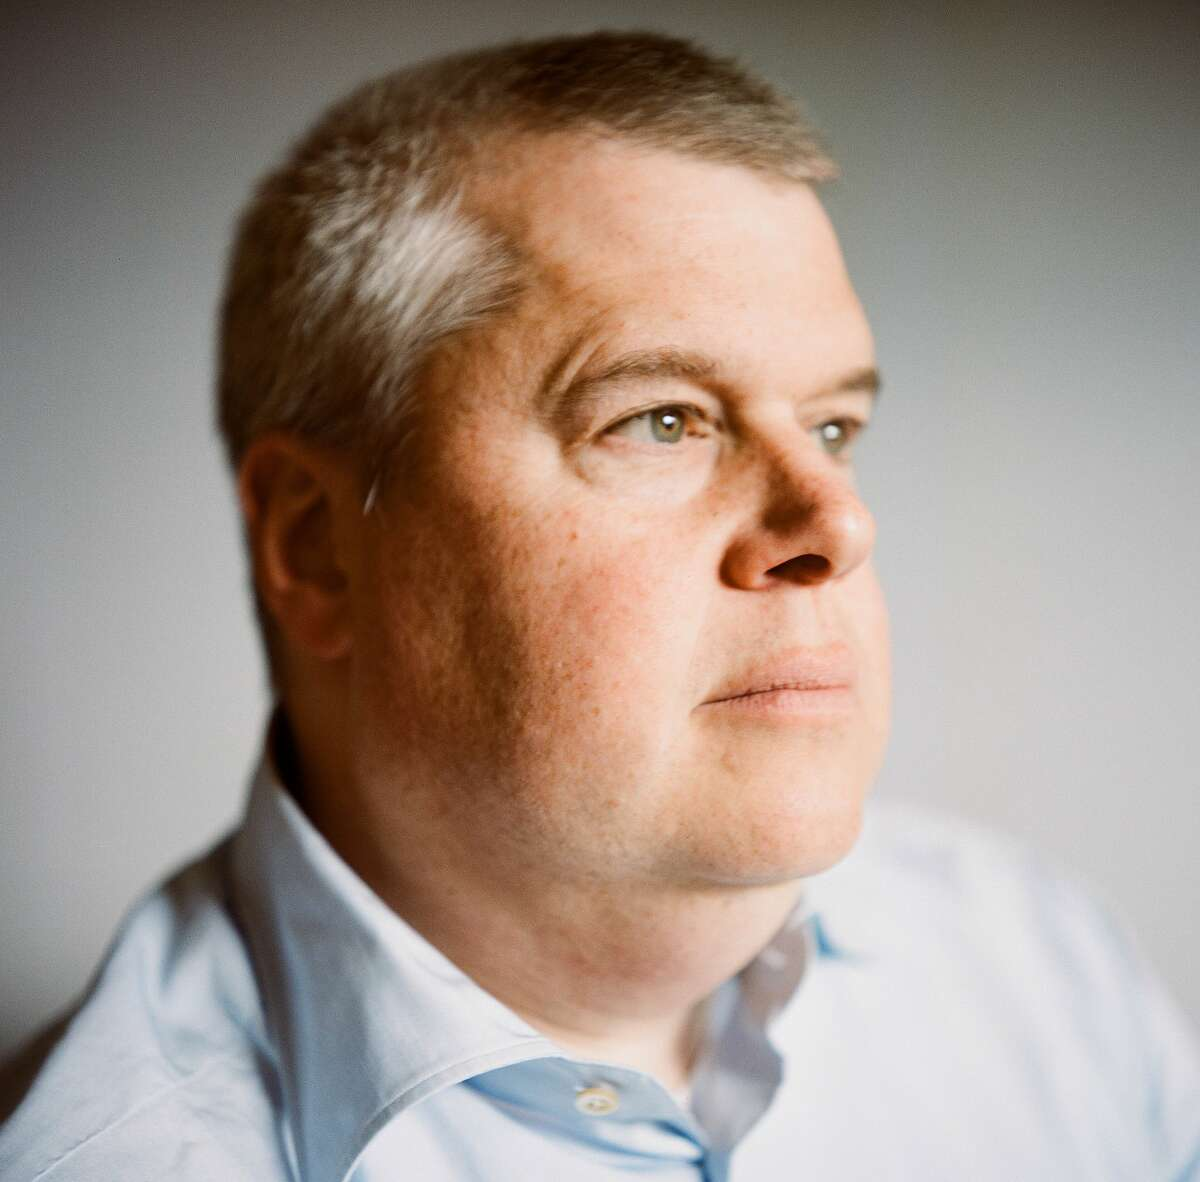 """Daniel Handler has a new play opening, """"Imaginary Comforts or The Story of the Ghost of the Dead Rabbit"""""""